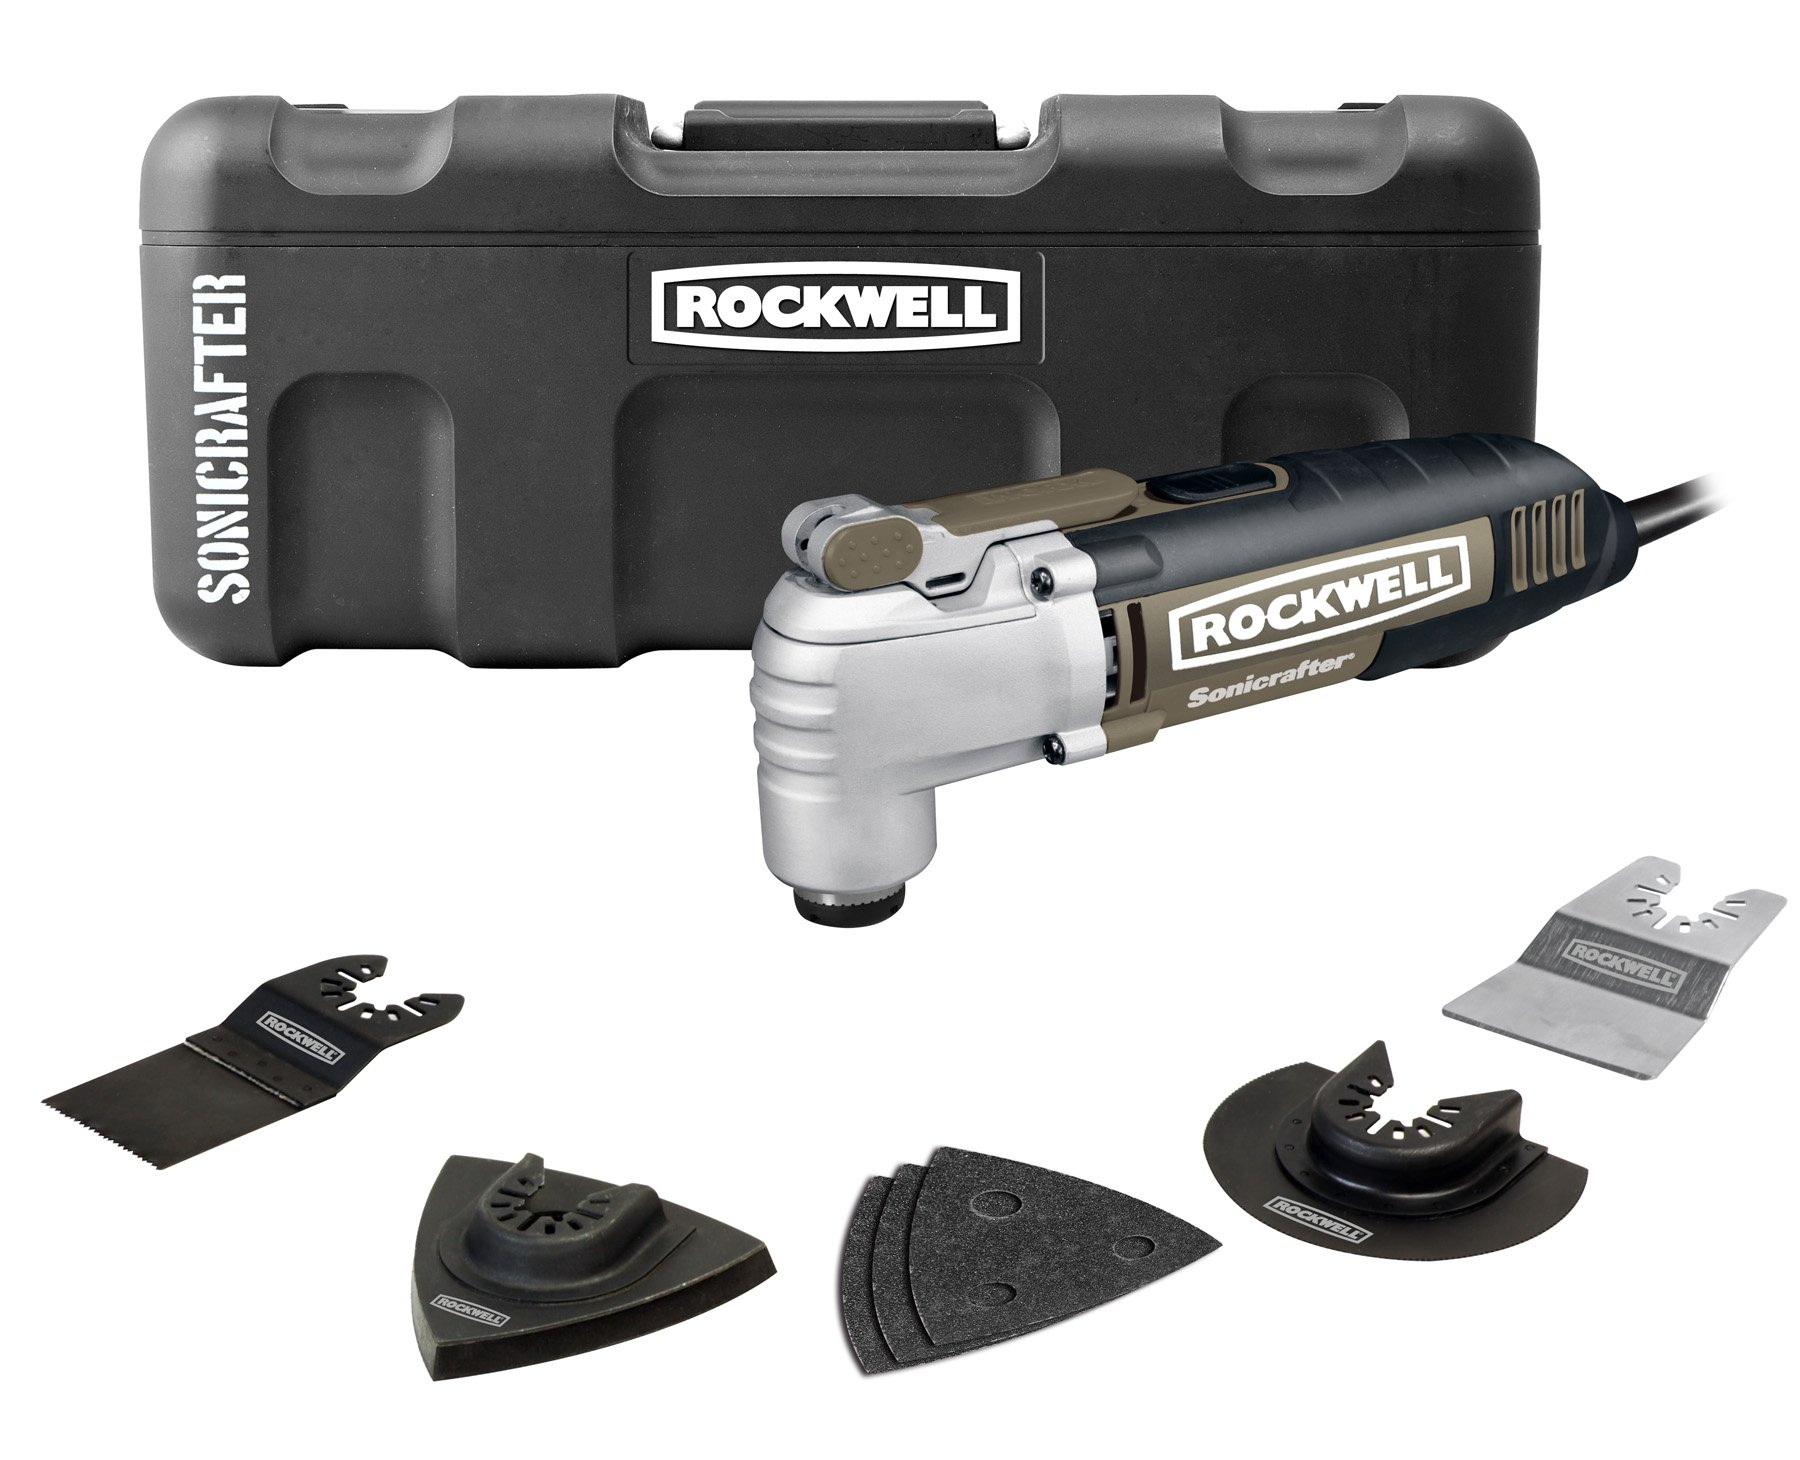 Rockwell RK5139K Sonicrafter Hyperlock with Universal Fit Oscillating Tool Kit by Rockwell